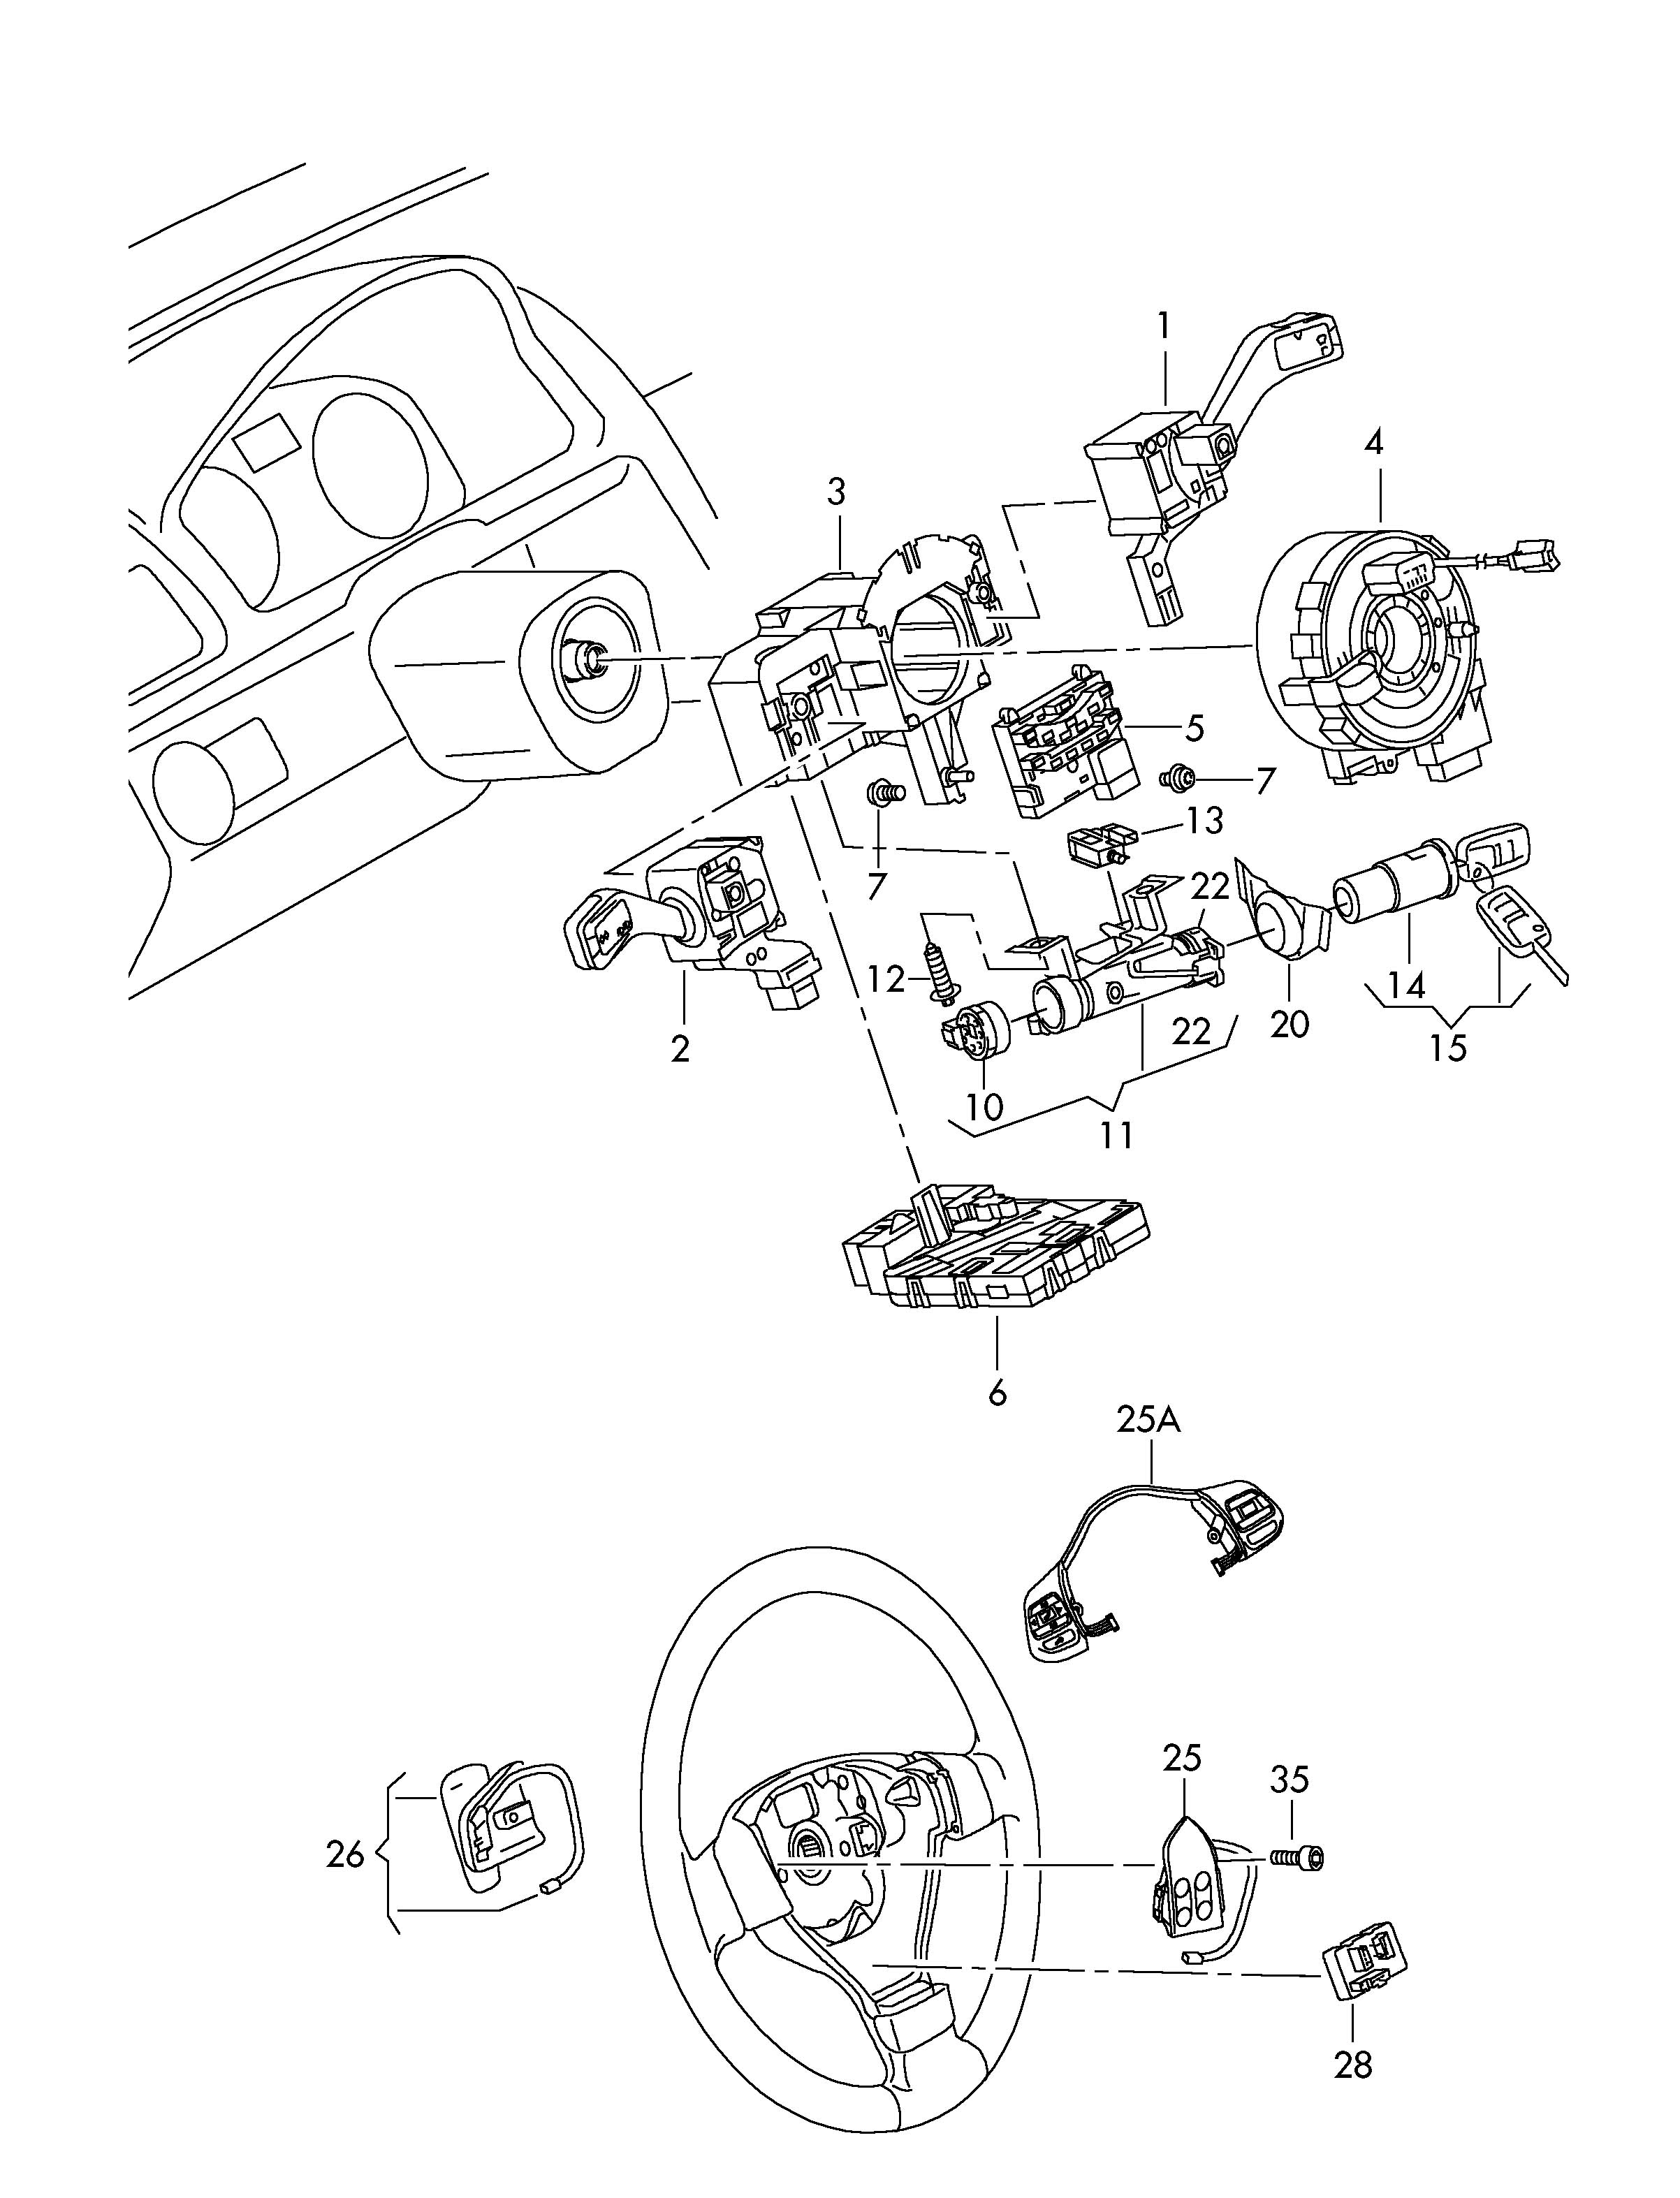 vw golf mk1 wiring diagram circuit breaker volkswagen rabbit ignition switch